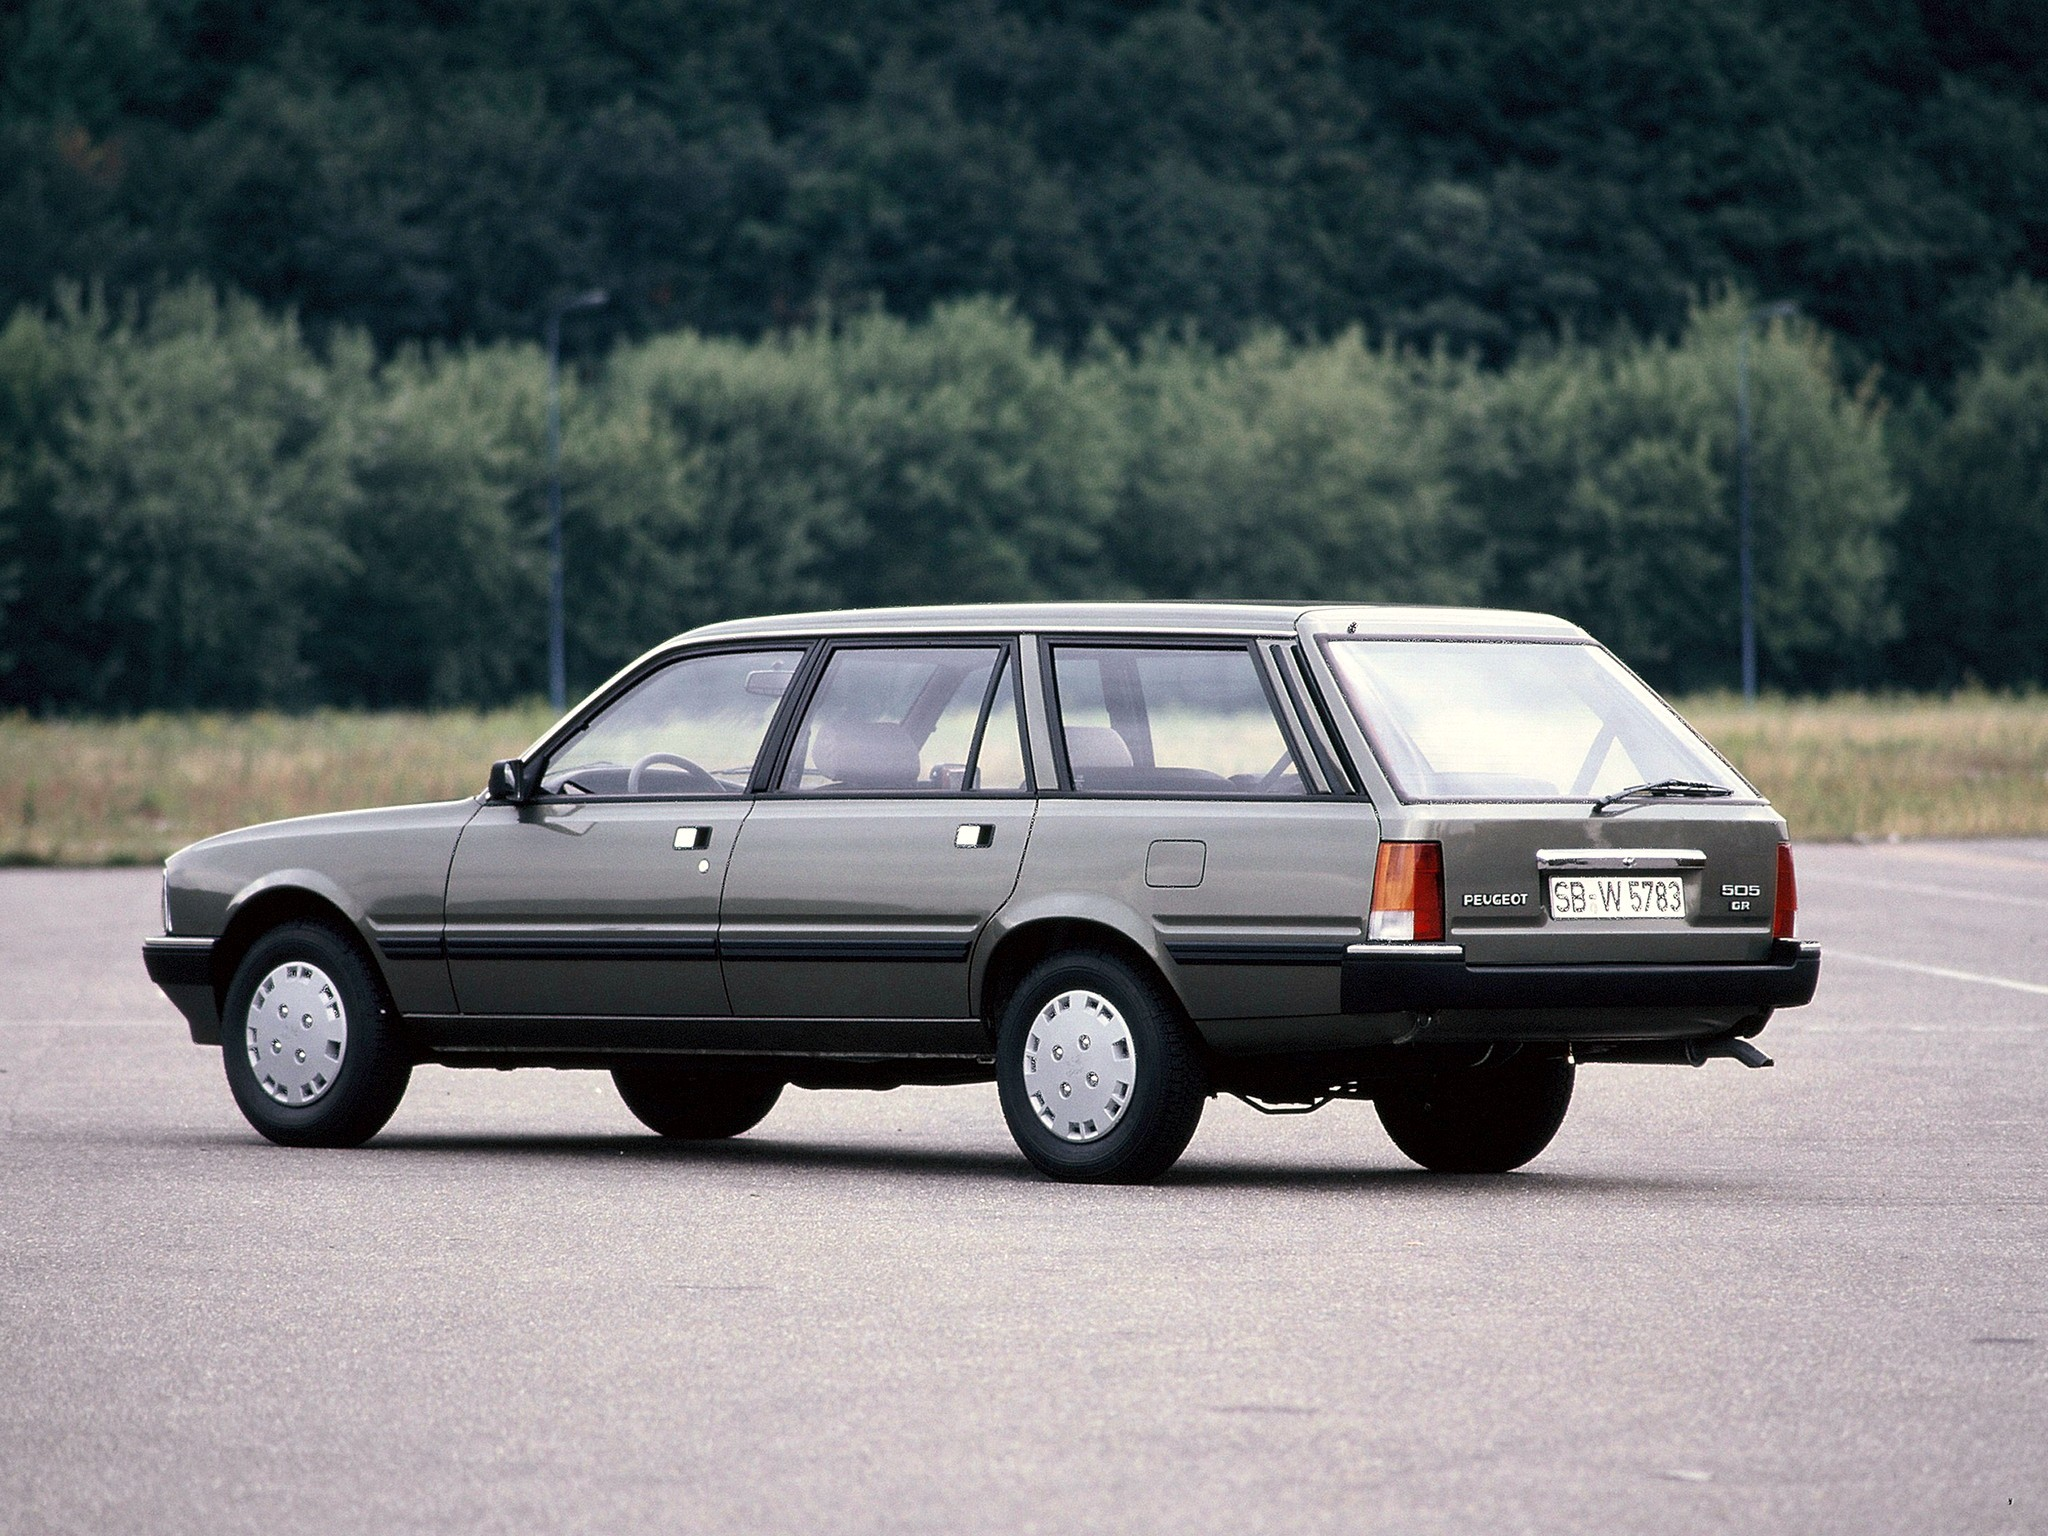 Peugeot 505 2.2 1988 | Auto images and Specification